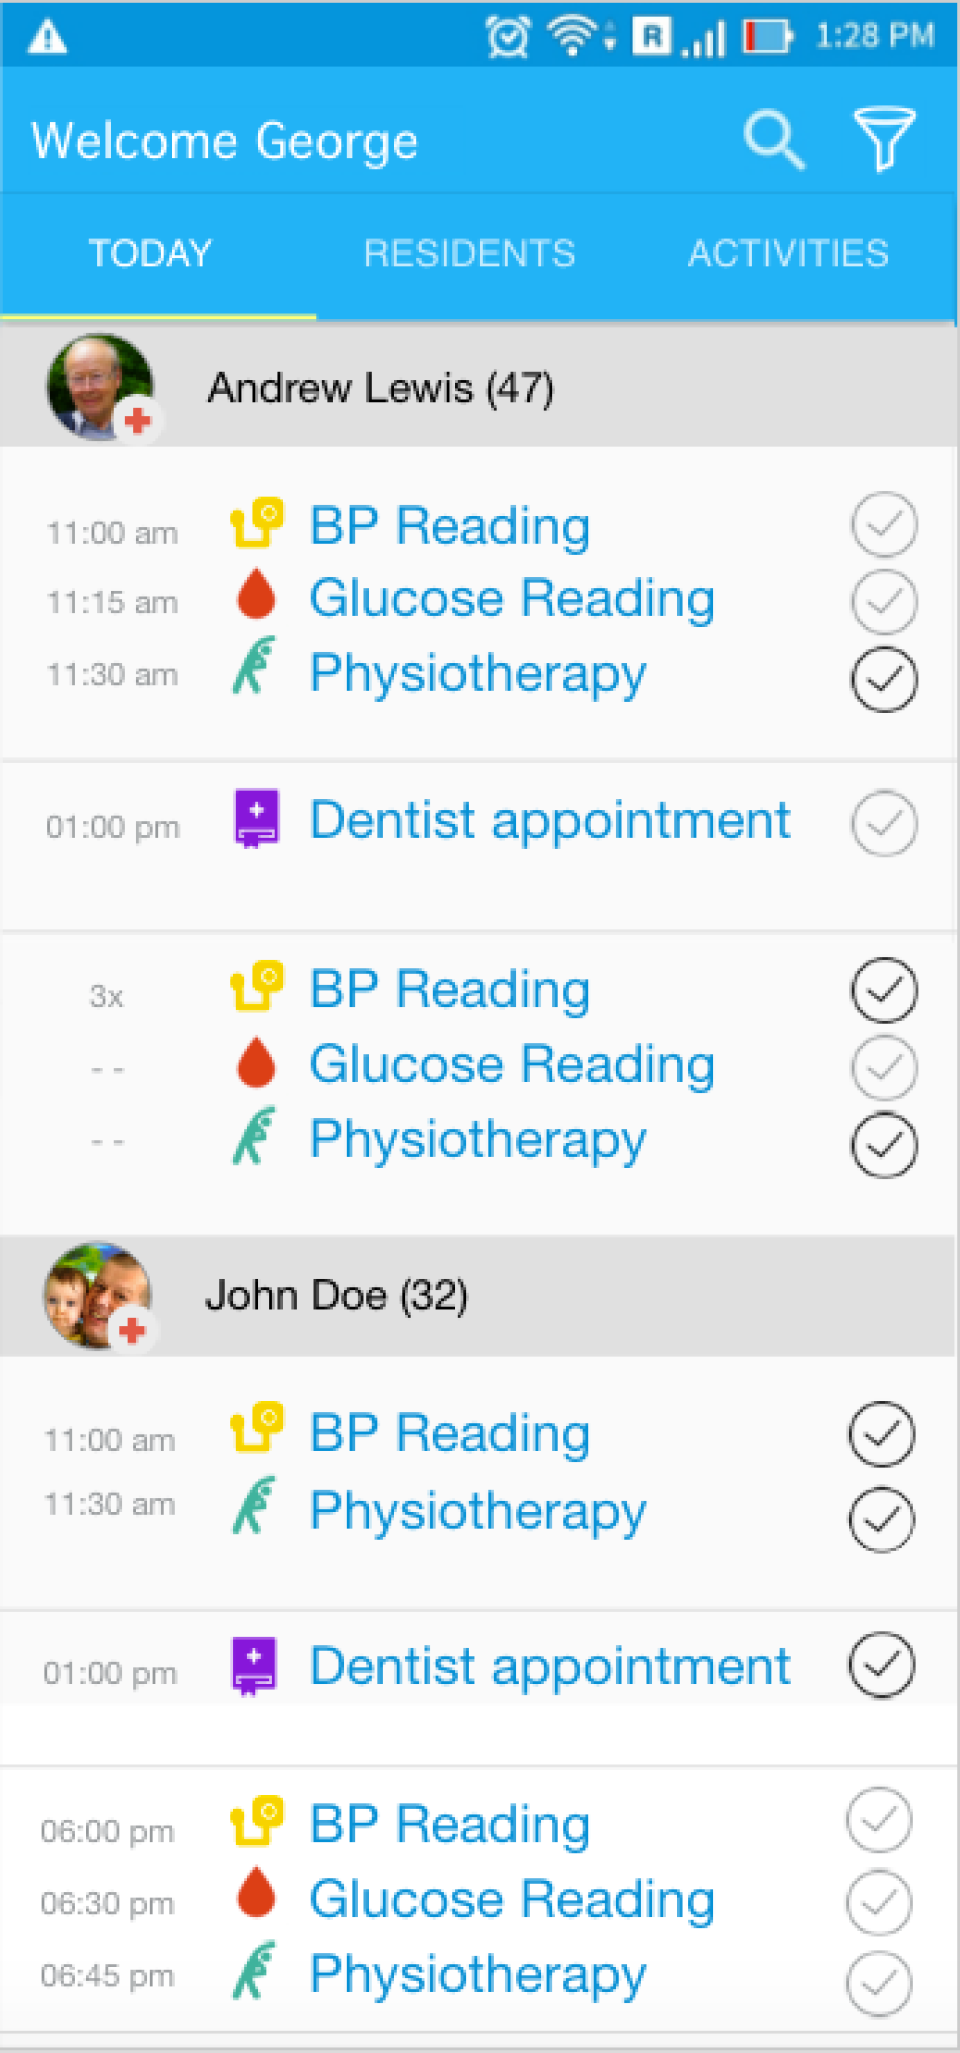 View all tasks for the day for each patient